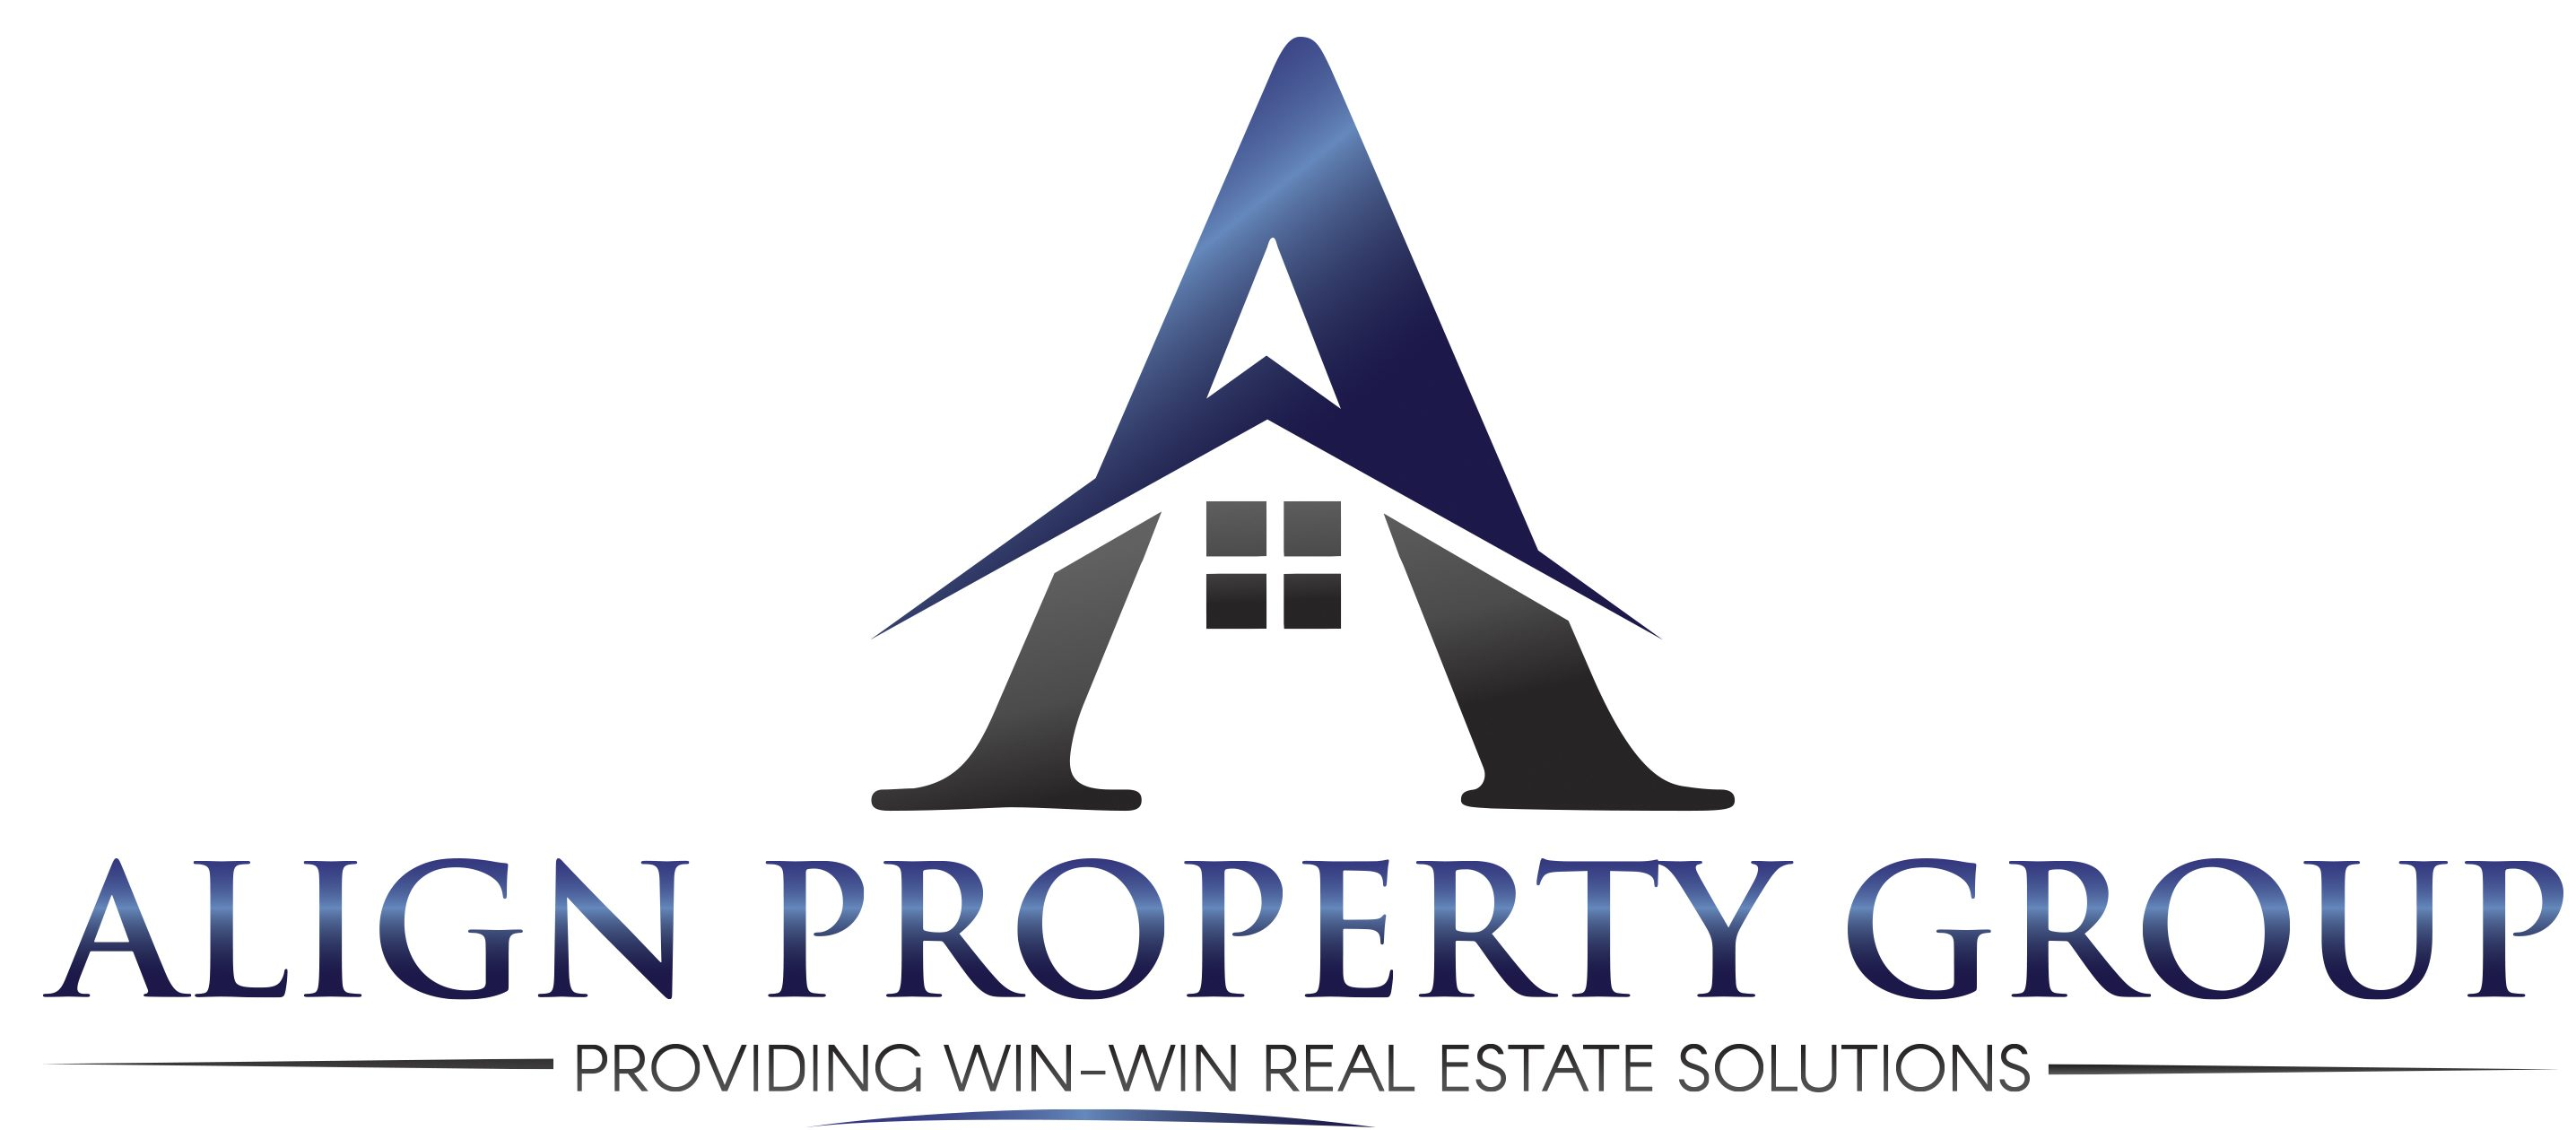 Align Property Group, LLC